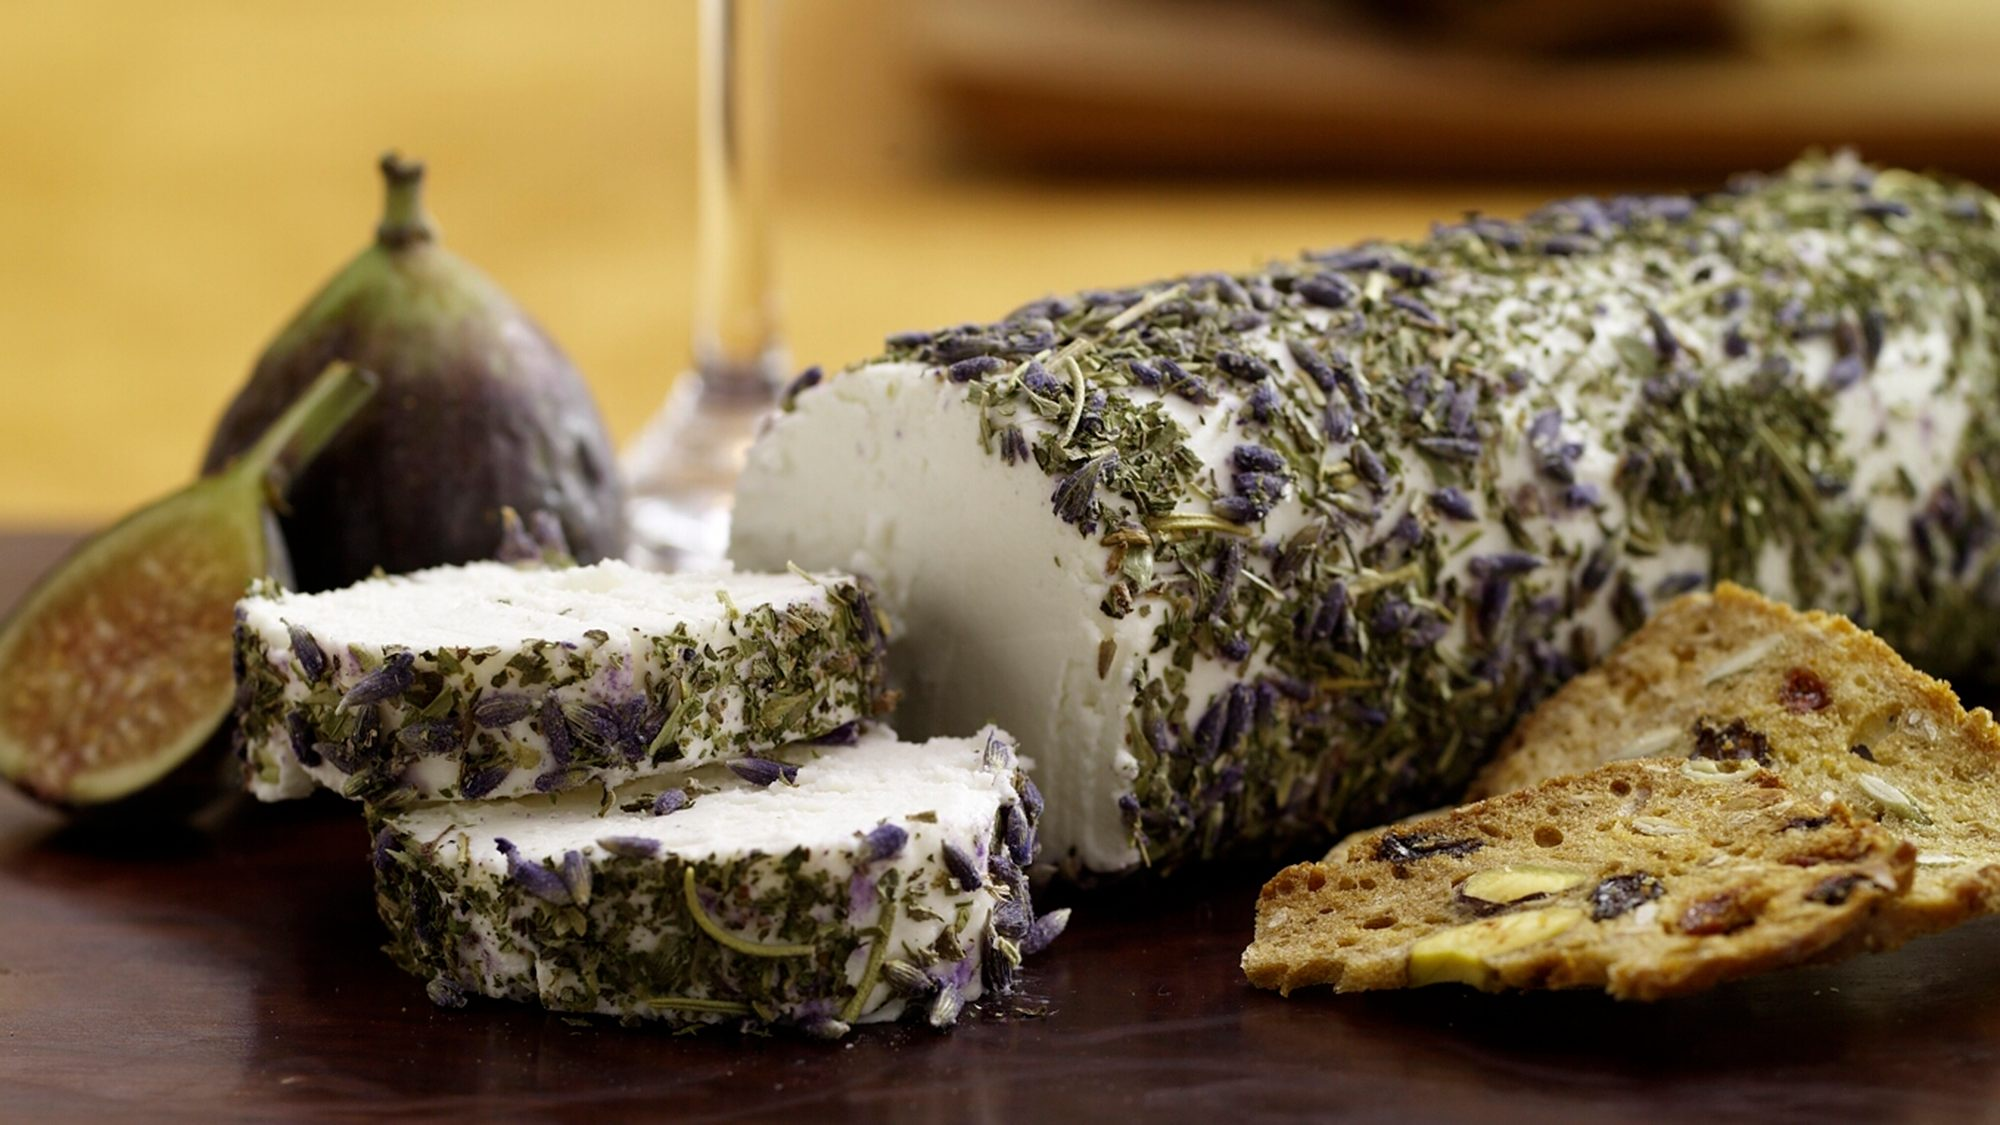 goat-cheese-with-herbes-de-provence.jpg